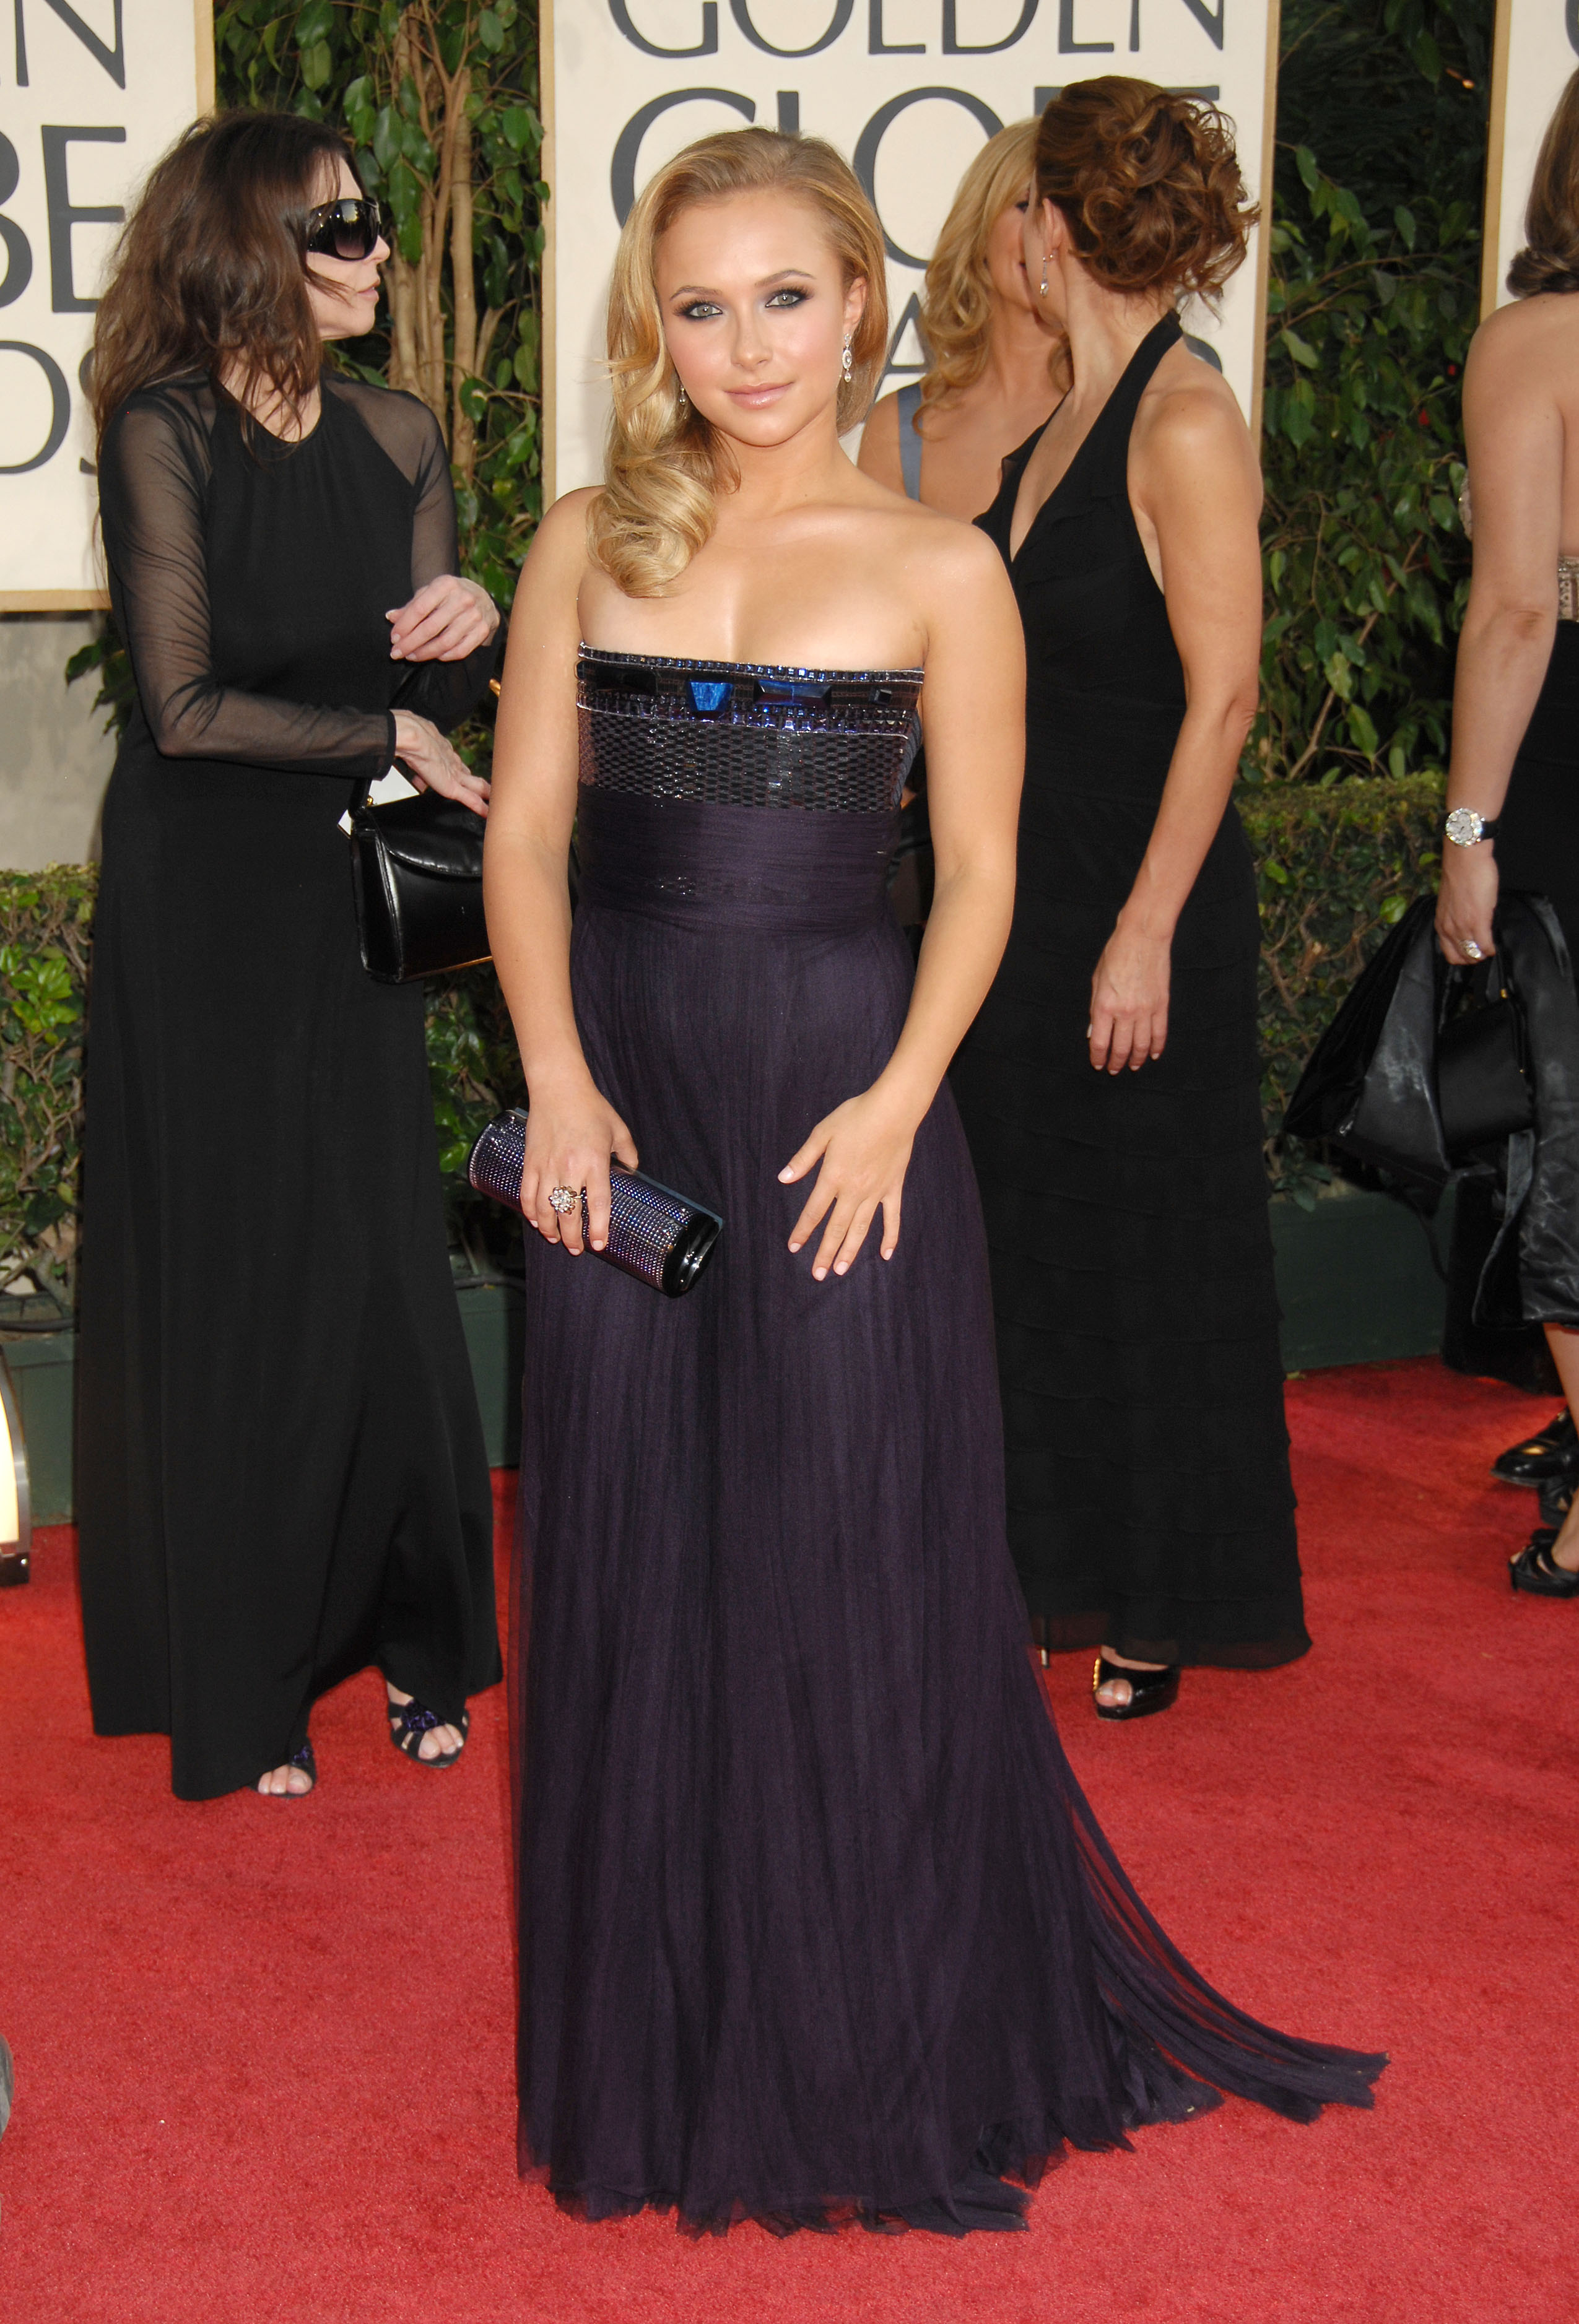 29538_Celebutopia-Hayden_Panettiere_arrives_at_the_66th_Annual_Golden_Globe_Awards-13_122_721lo.jpg